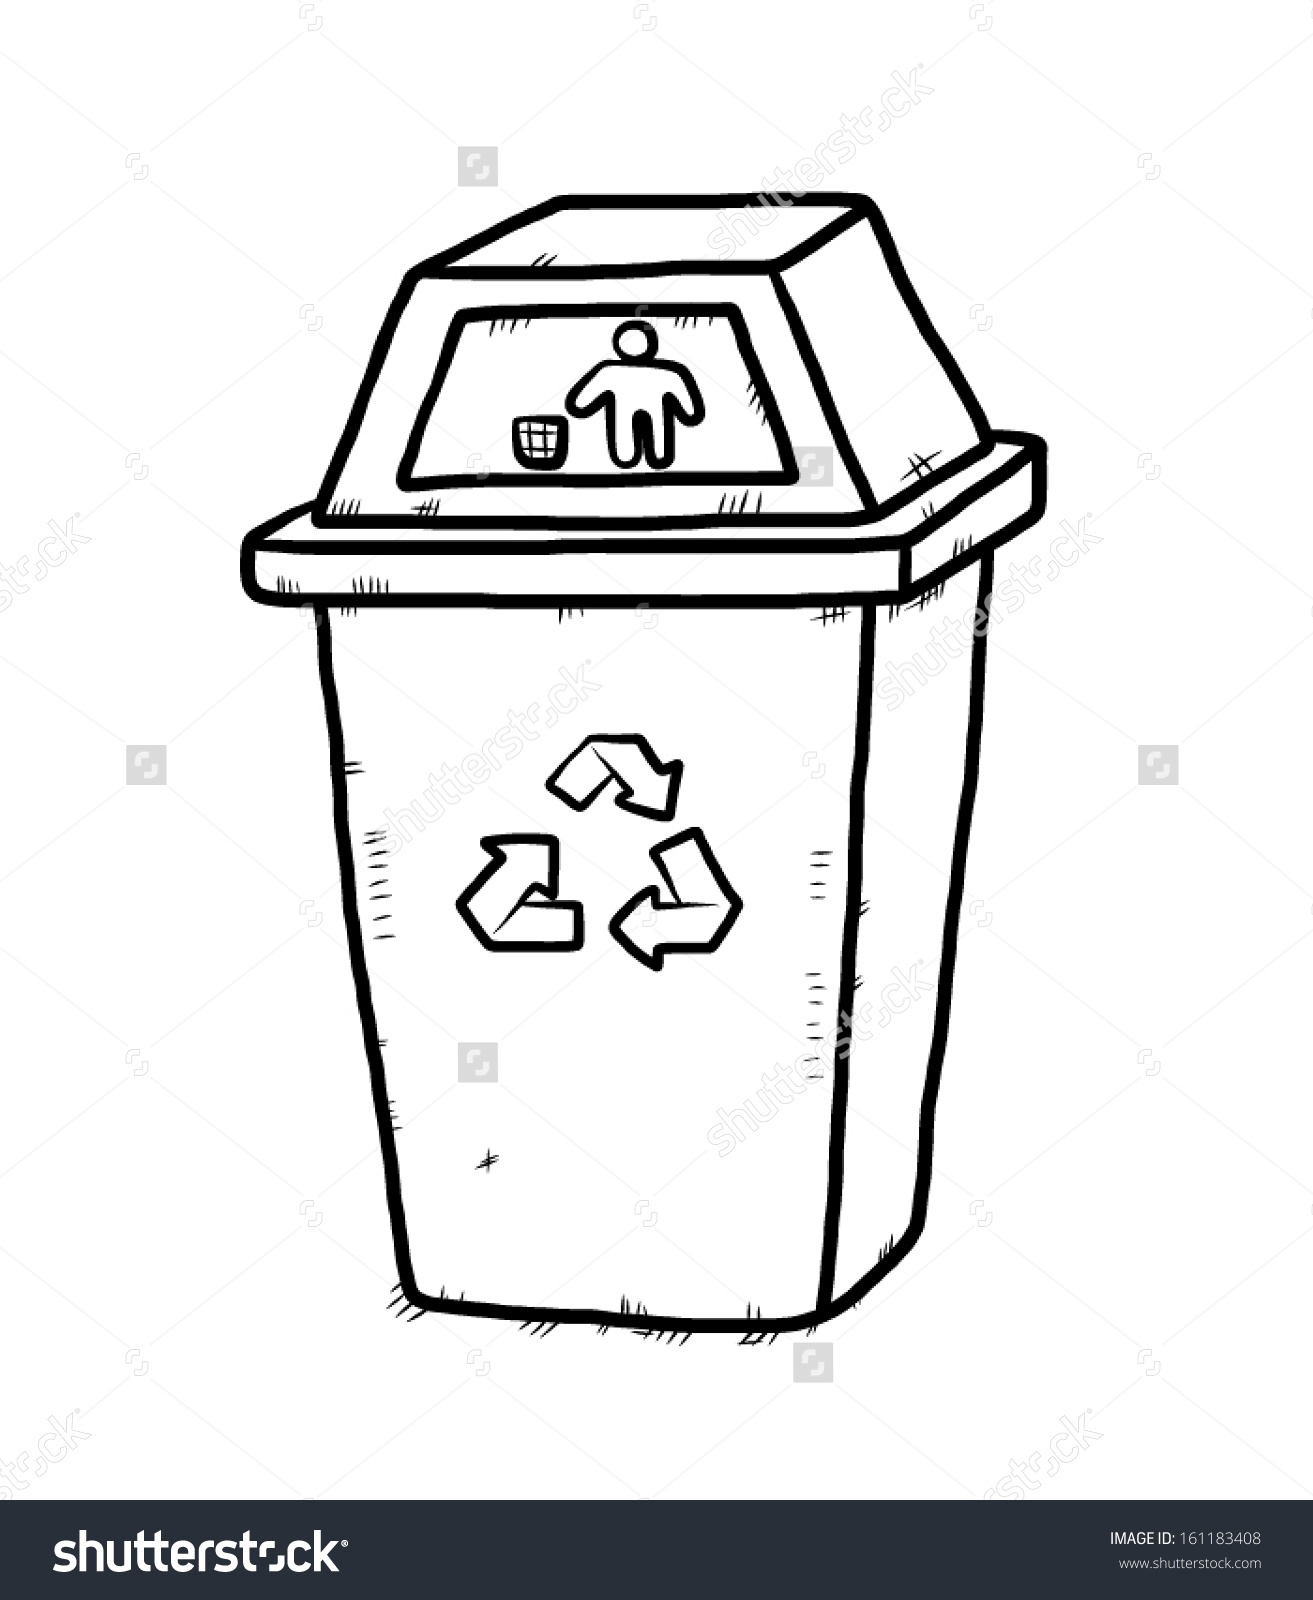 Recycling Bin Clipart Black And White 20 Free Cliparts